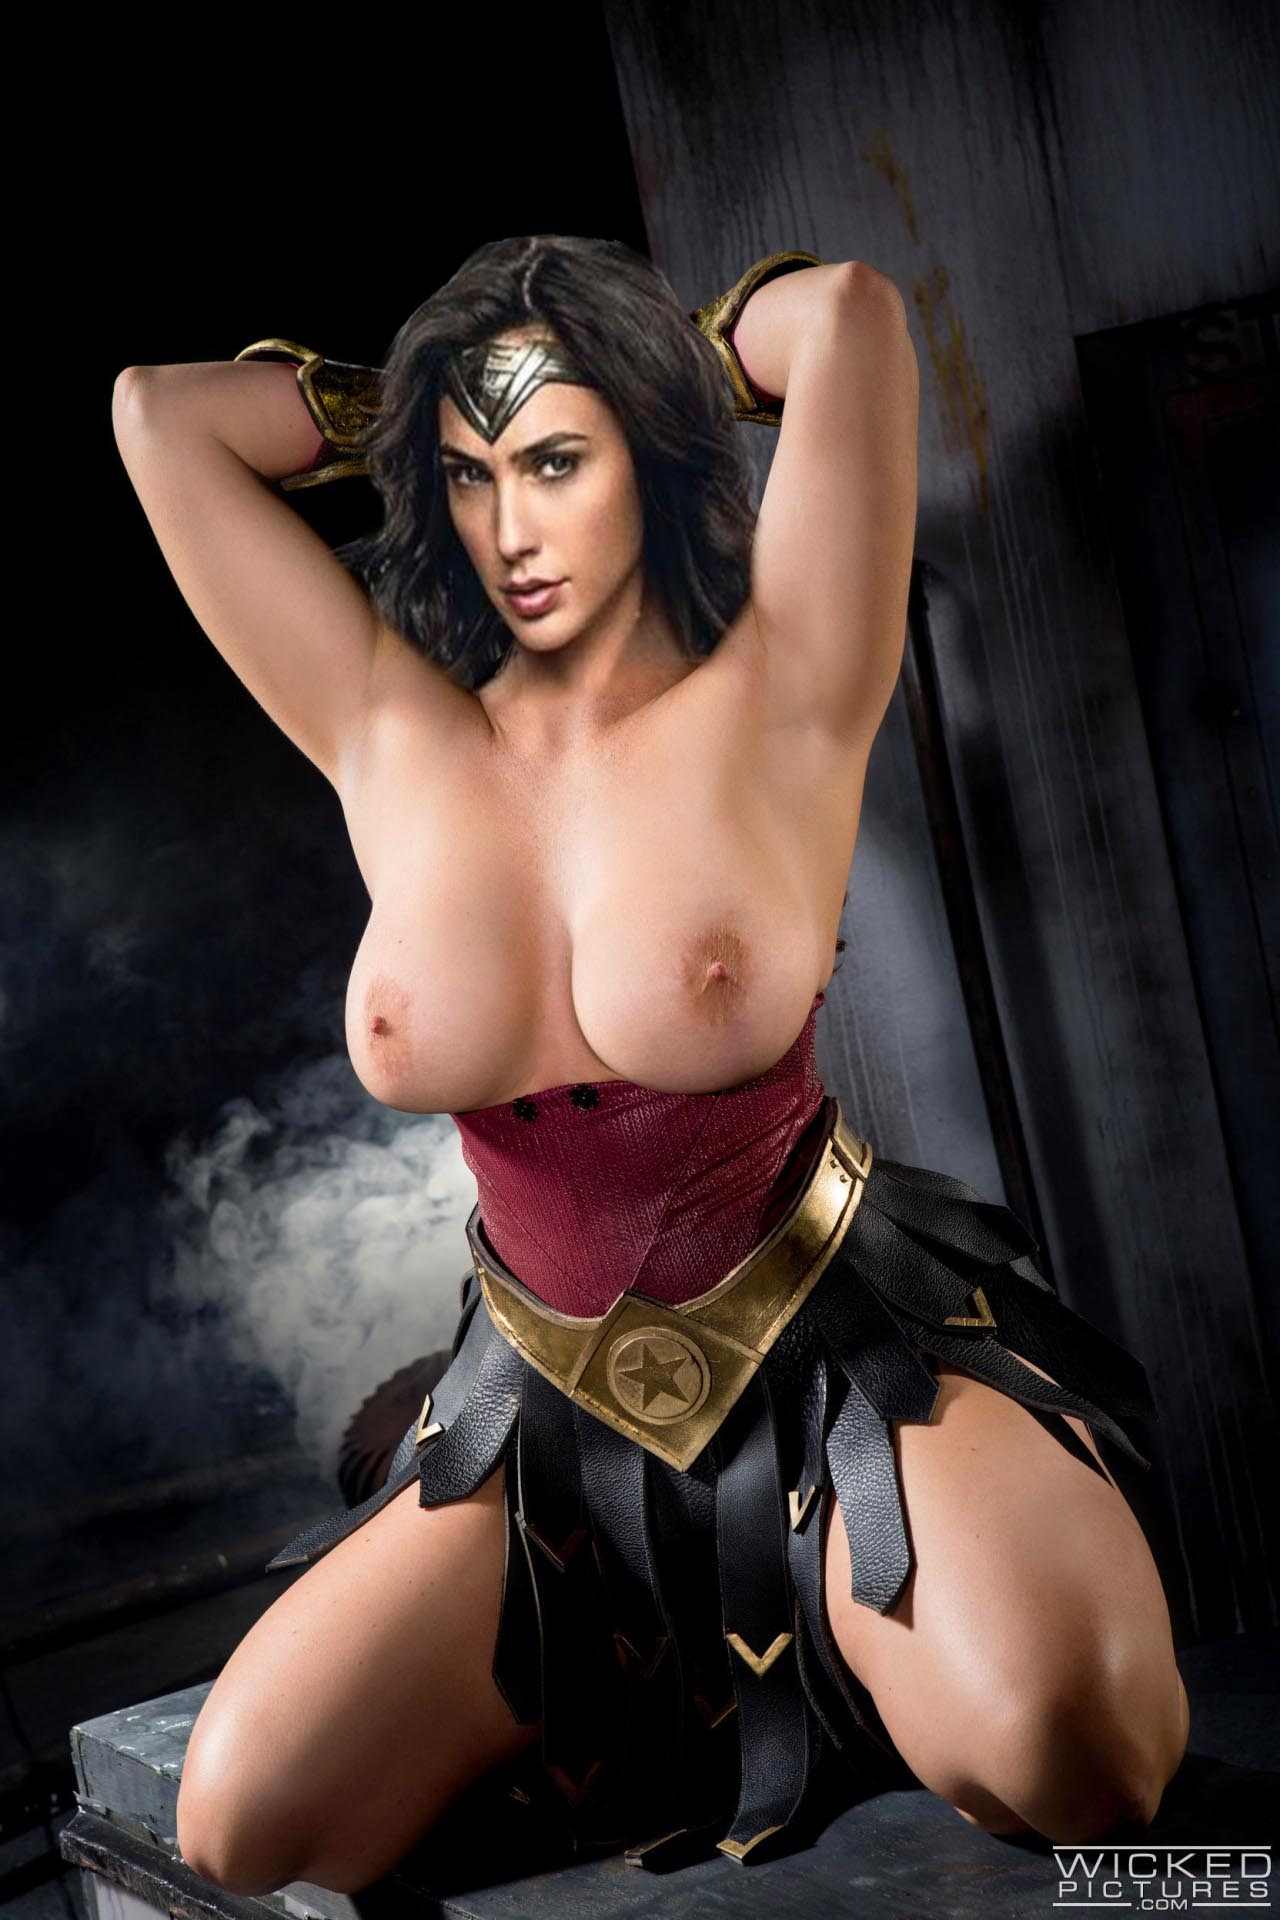 Wonder woman big tits nude pics naked photo